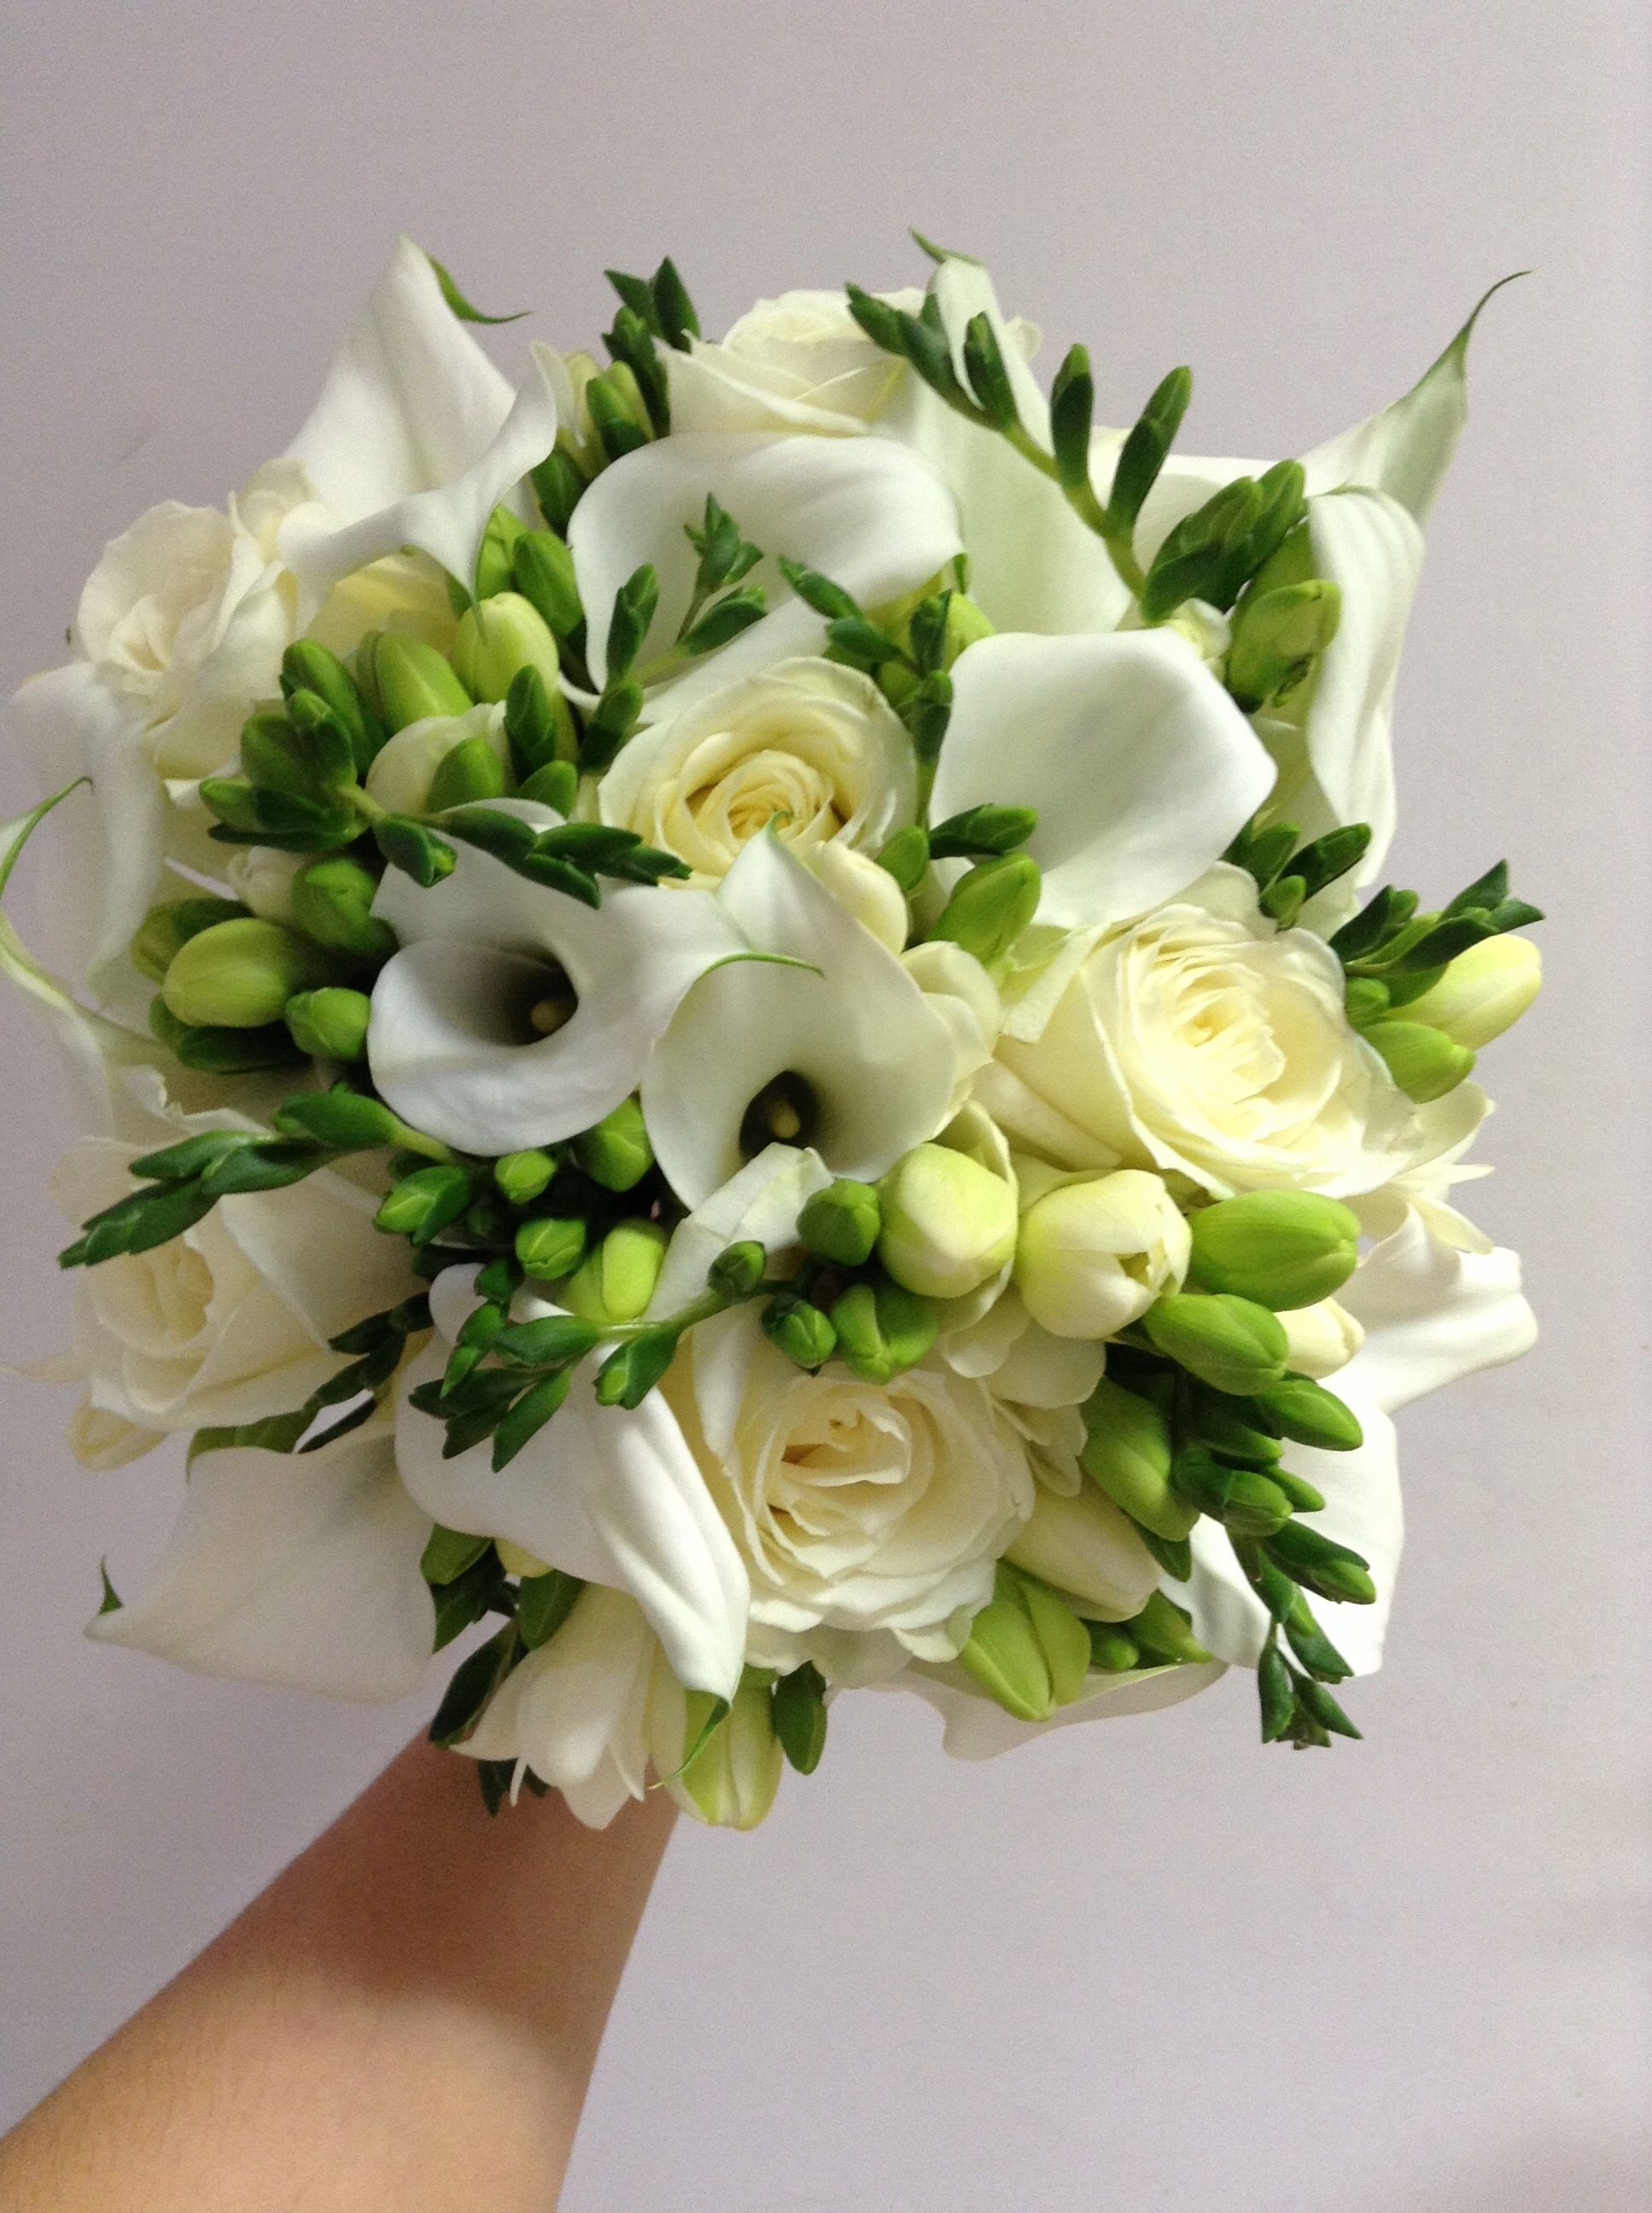 Calla Lilies Roses And Freesia Bouquet By Add Style Uk Freesia Bouquet Wedding Bouquets Wedding Flowers